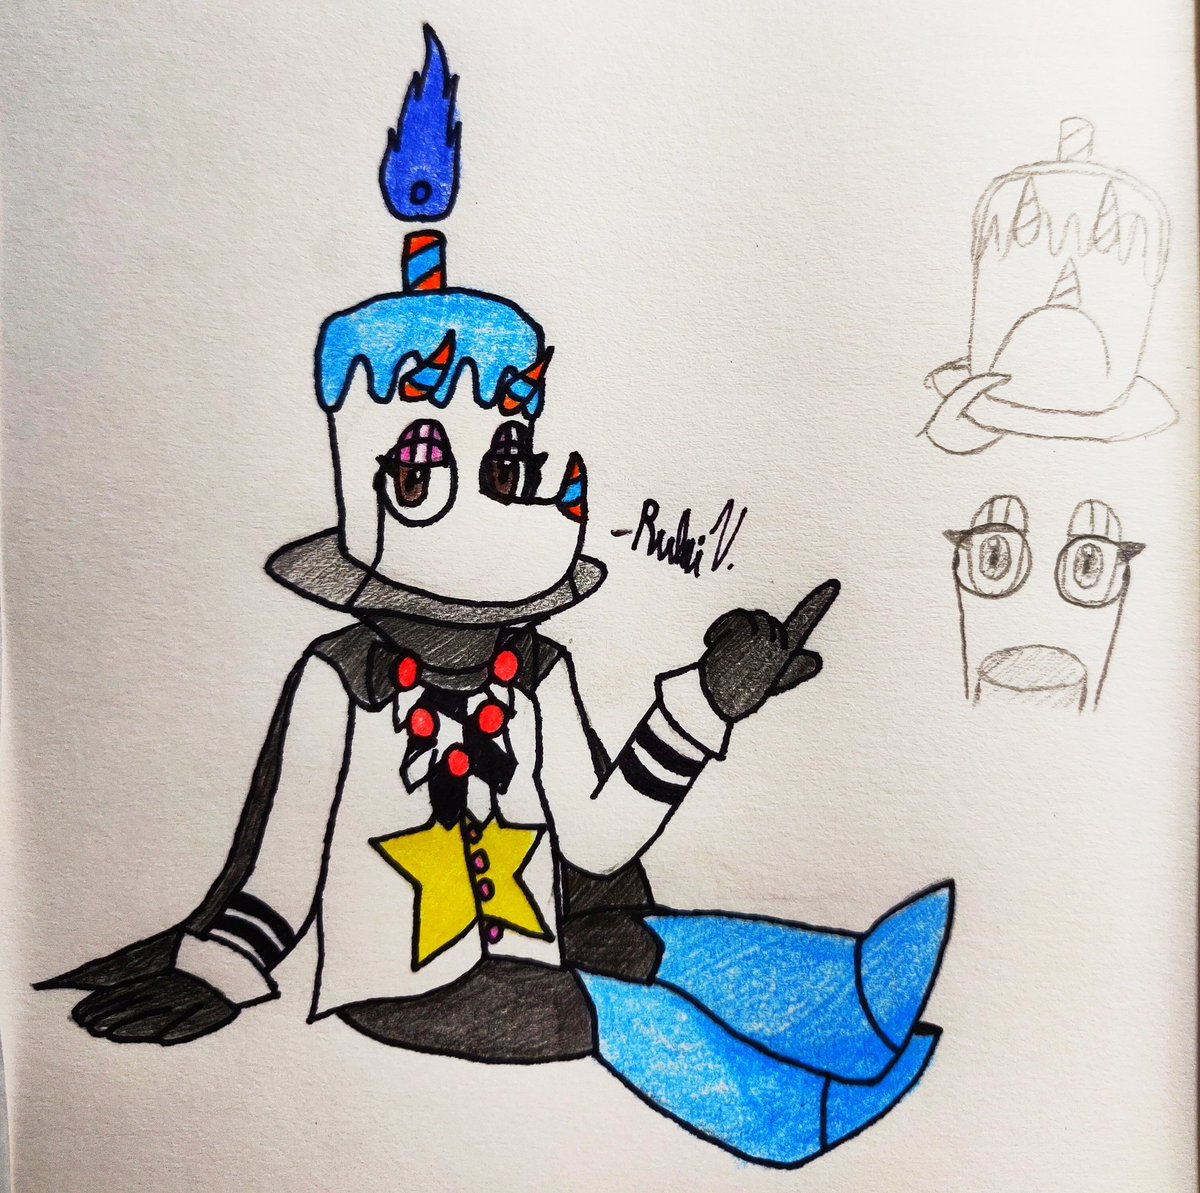 What if Zircon and Cake Caster just fused together?<br>http://pic.twitter.com/3BfQx0LXFB